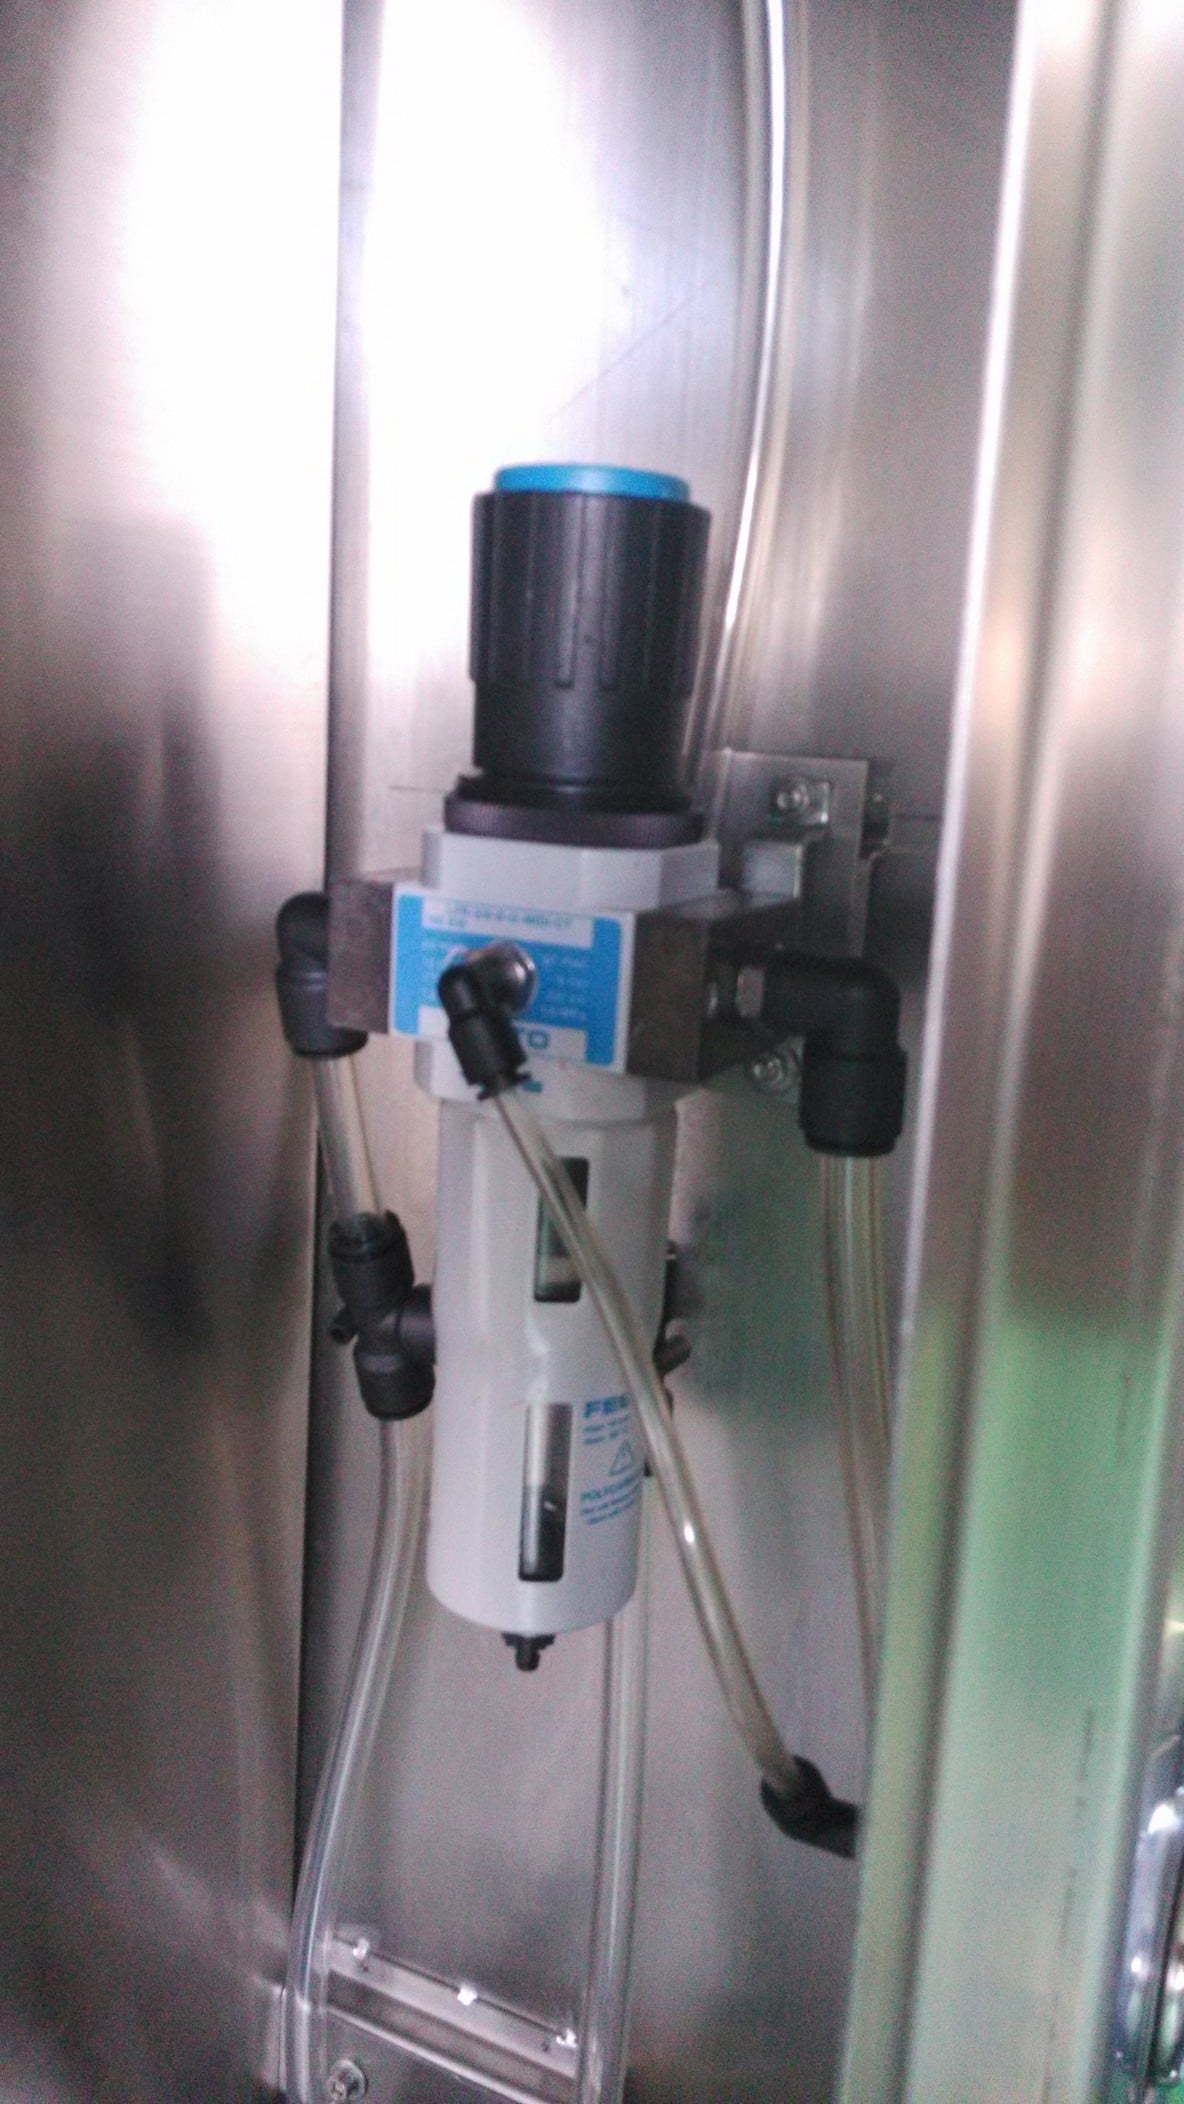 S 1688 Stencil Cleaner Machine For Electronic Manufacturing Smt We Circuit Board Cleaning Equipment Pcb Cleaners 22